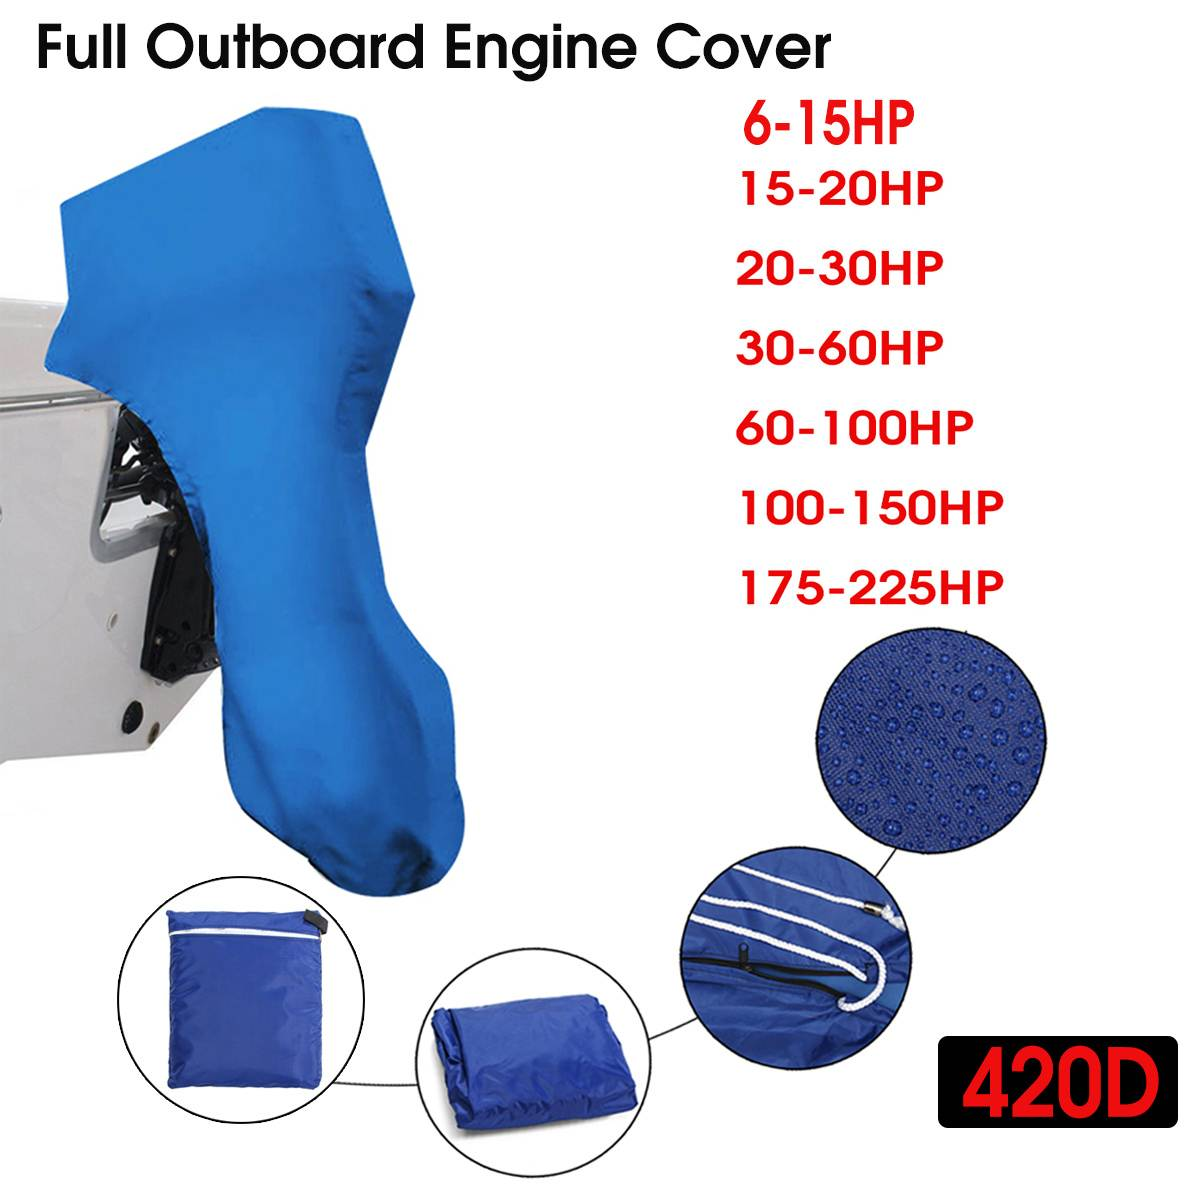 420D 6-225HP Boat Full Outboard Engine Cover Protection Blue For 6-225HP Motor Waterproof Sunshade Dust-proof